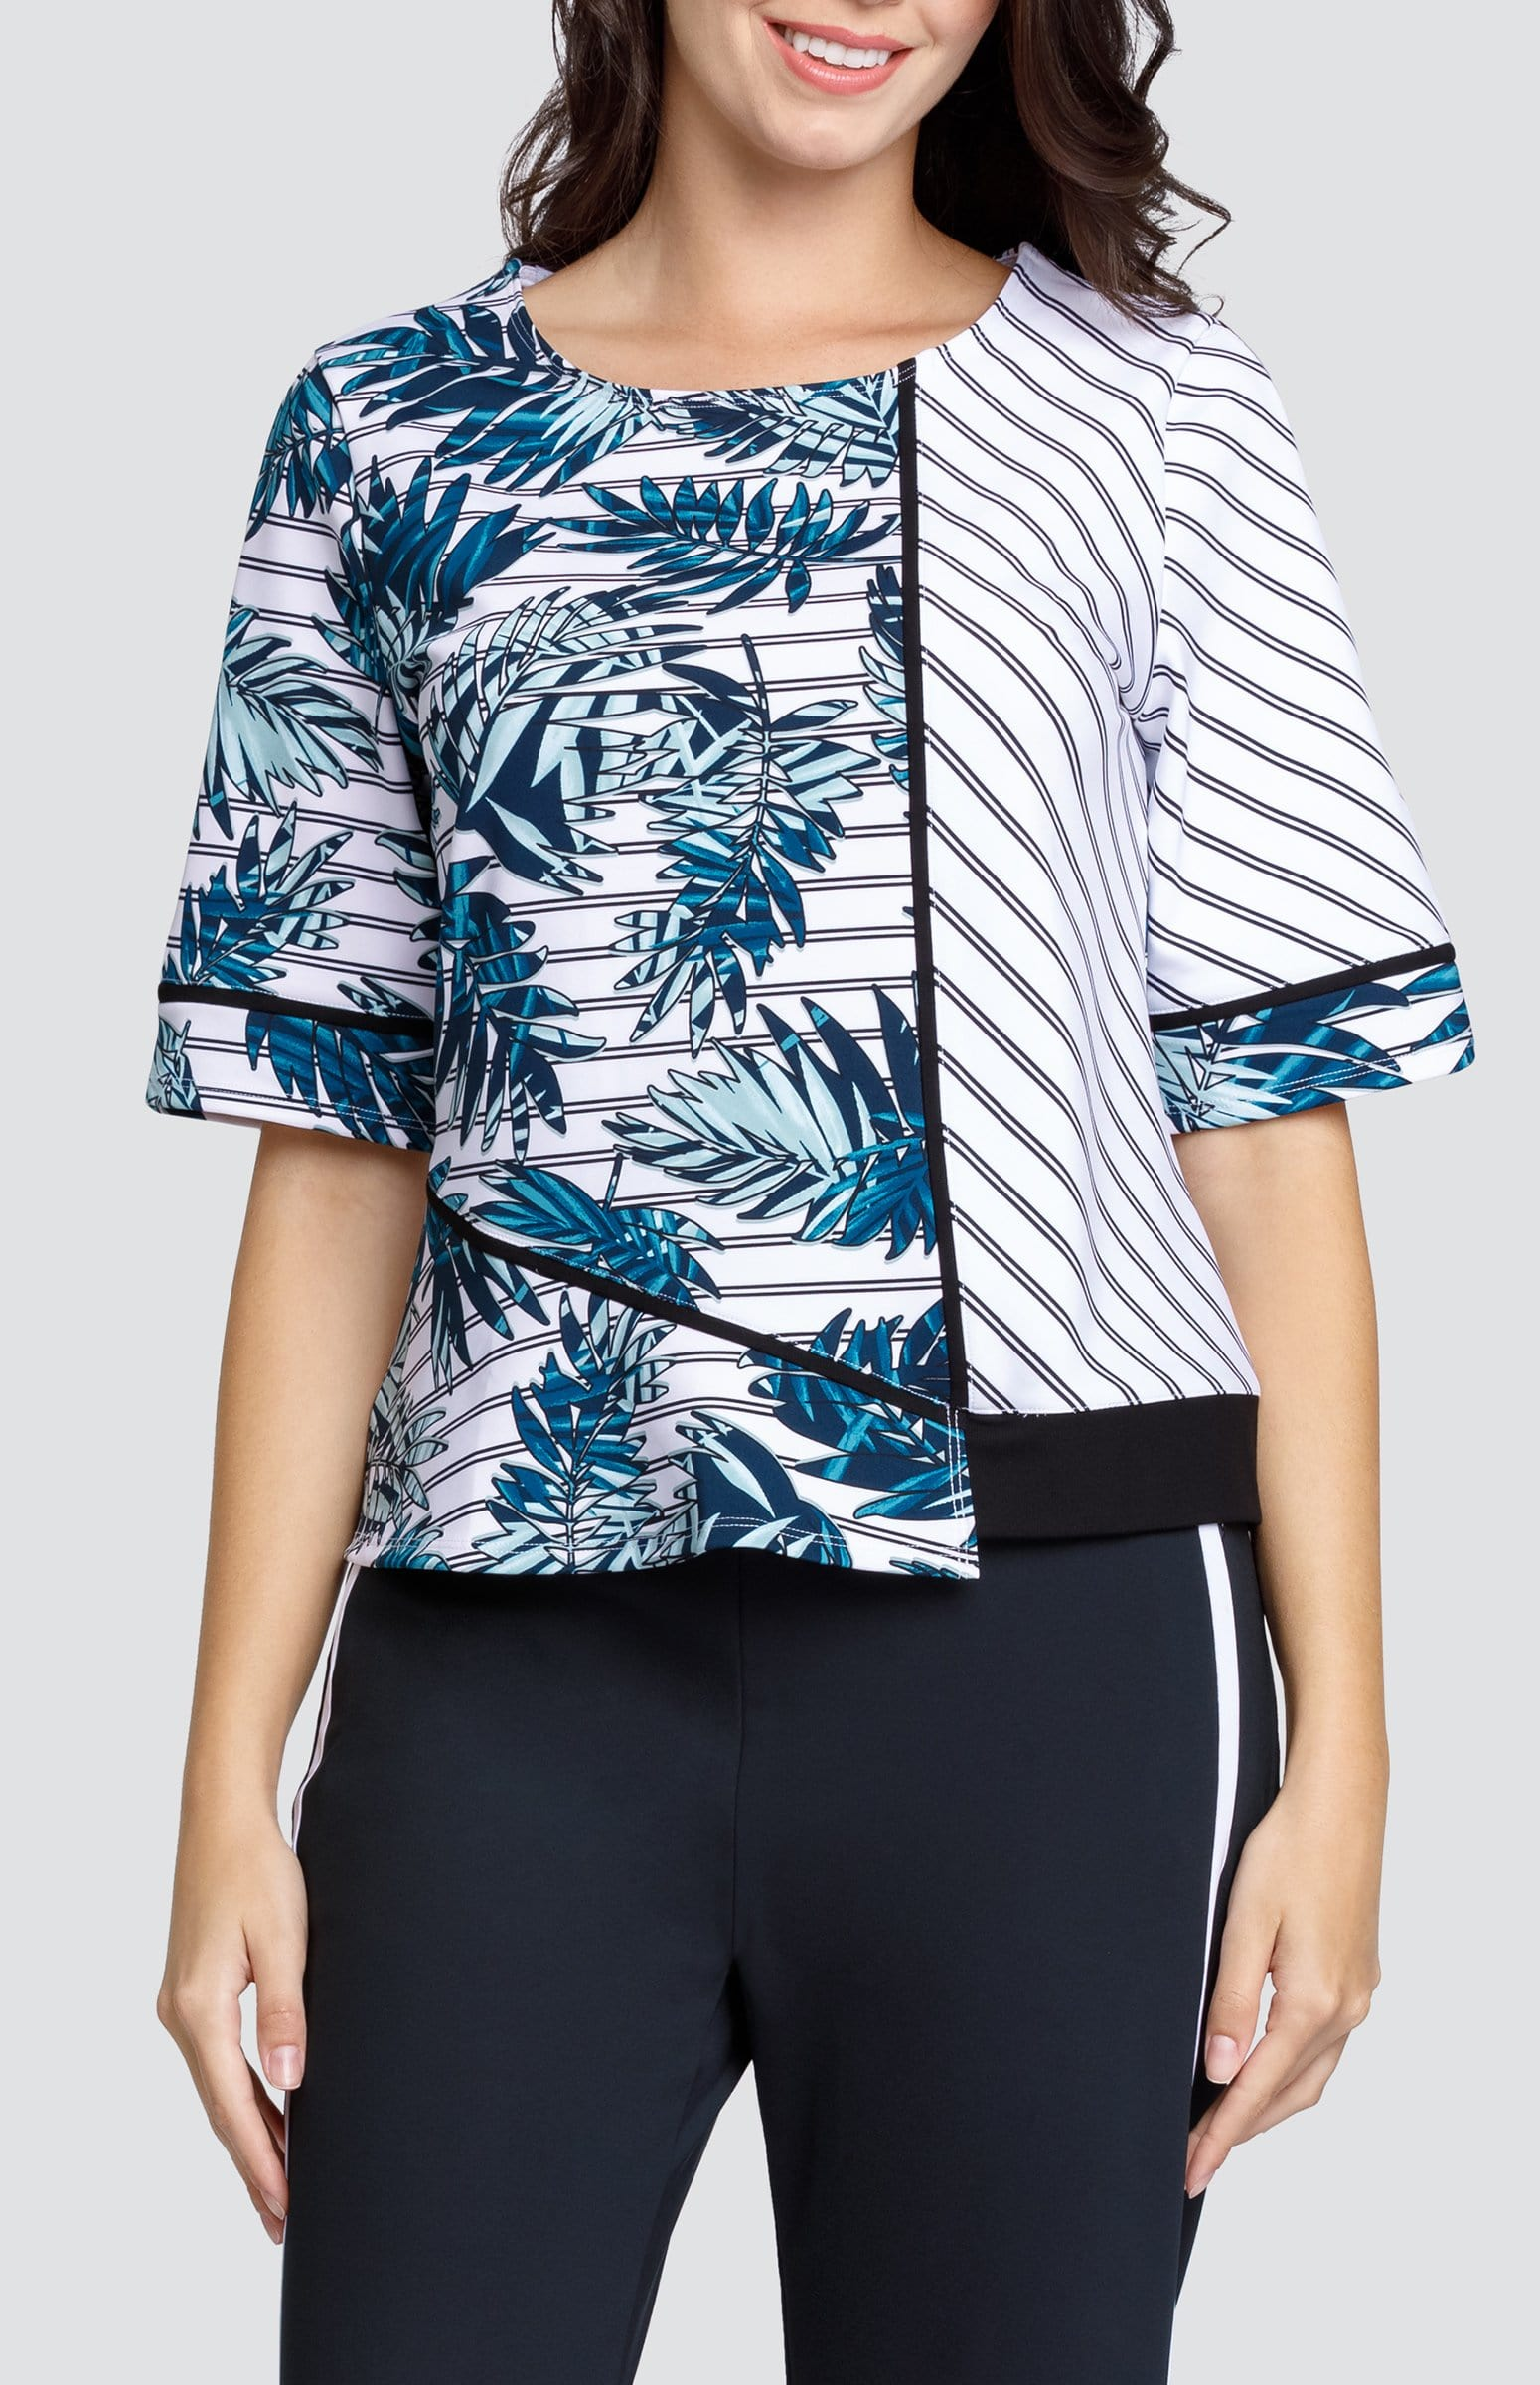 Enilda Top - Striped Palm